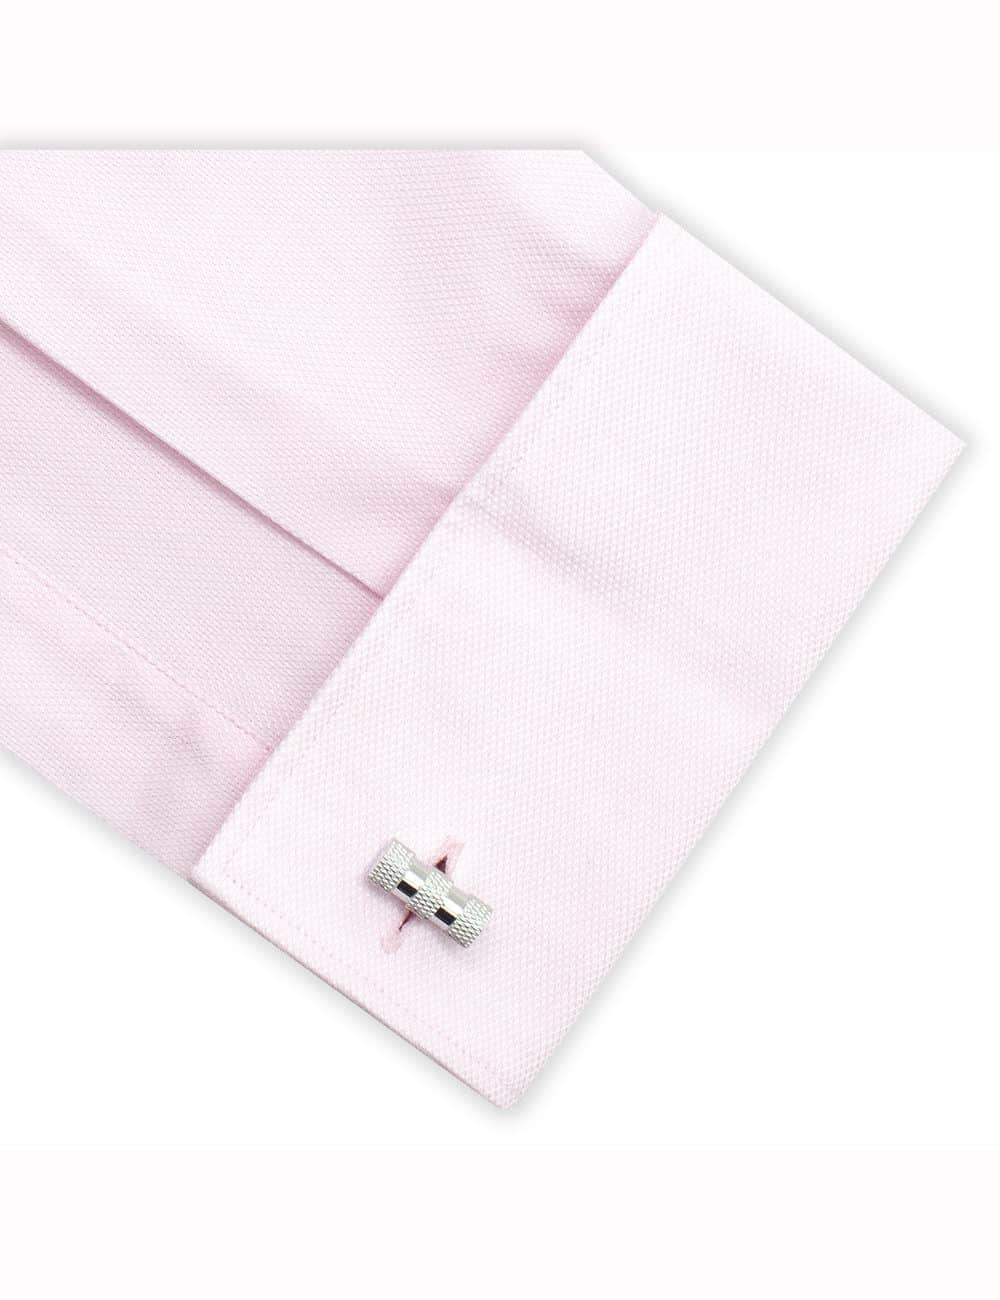 Classic Silver Barrel with Triple Checked Line Cufflink C101FC-080A